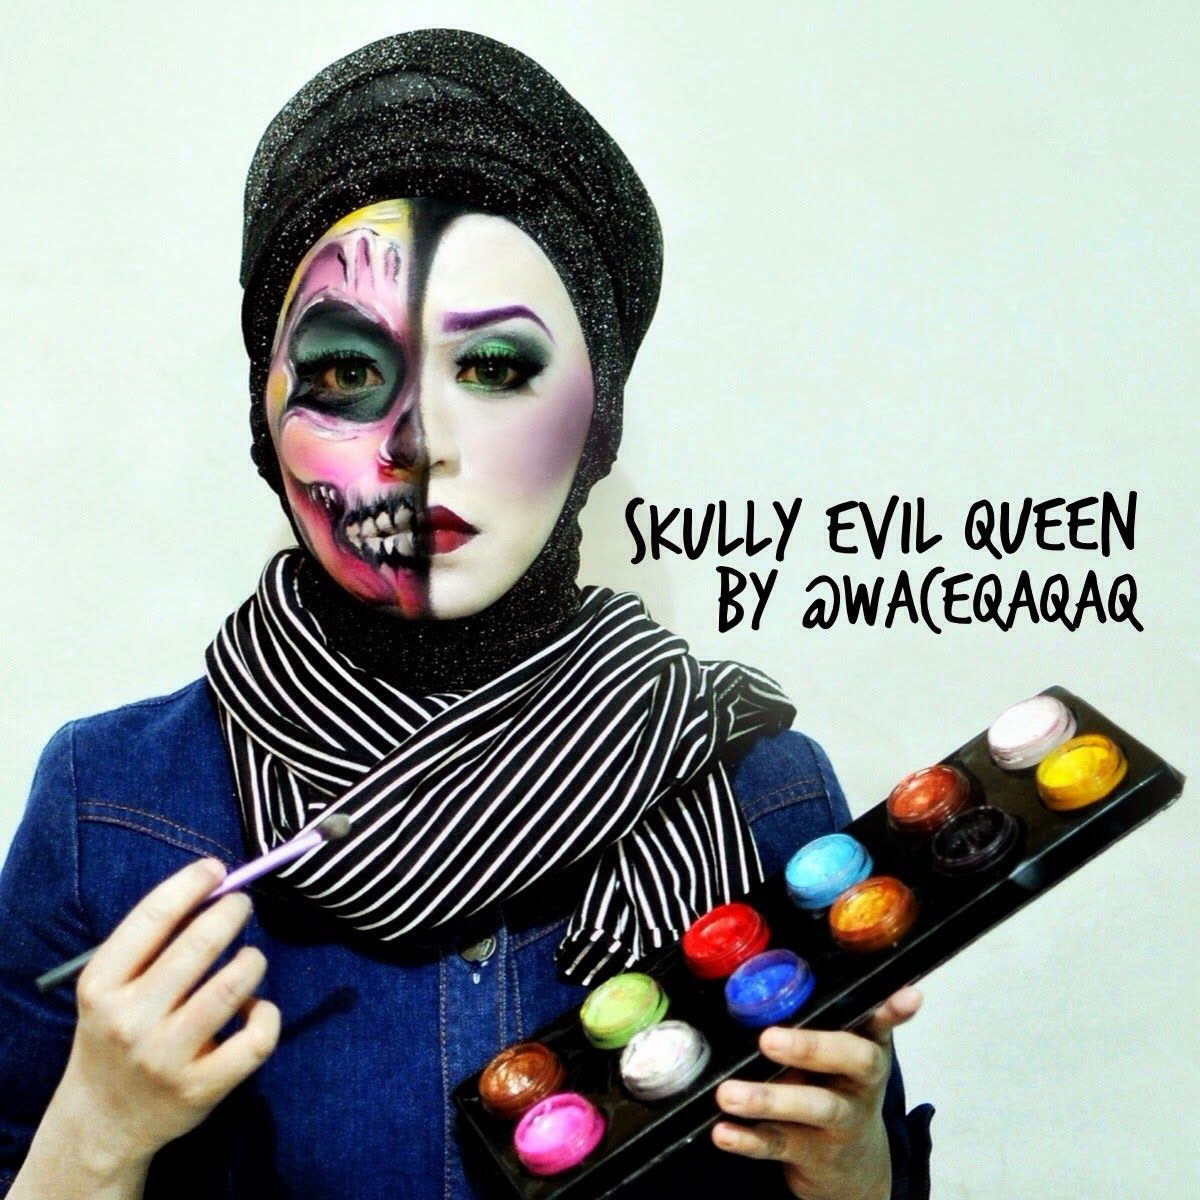 Ini Vindy Yang Ajaib: Face Painting Skully Evil Queen